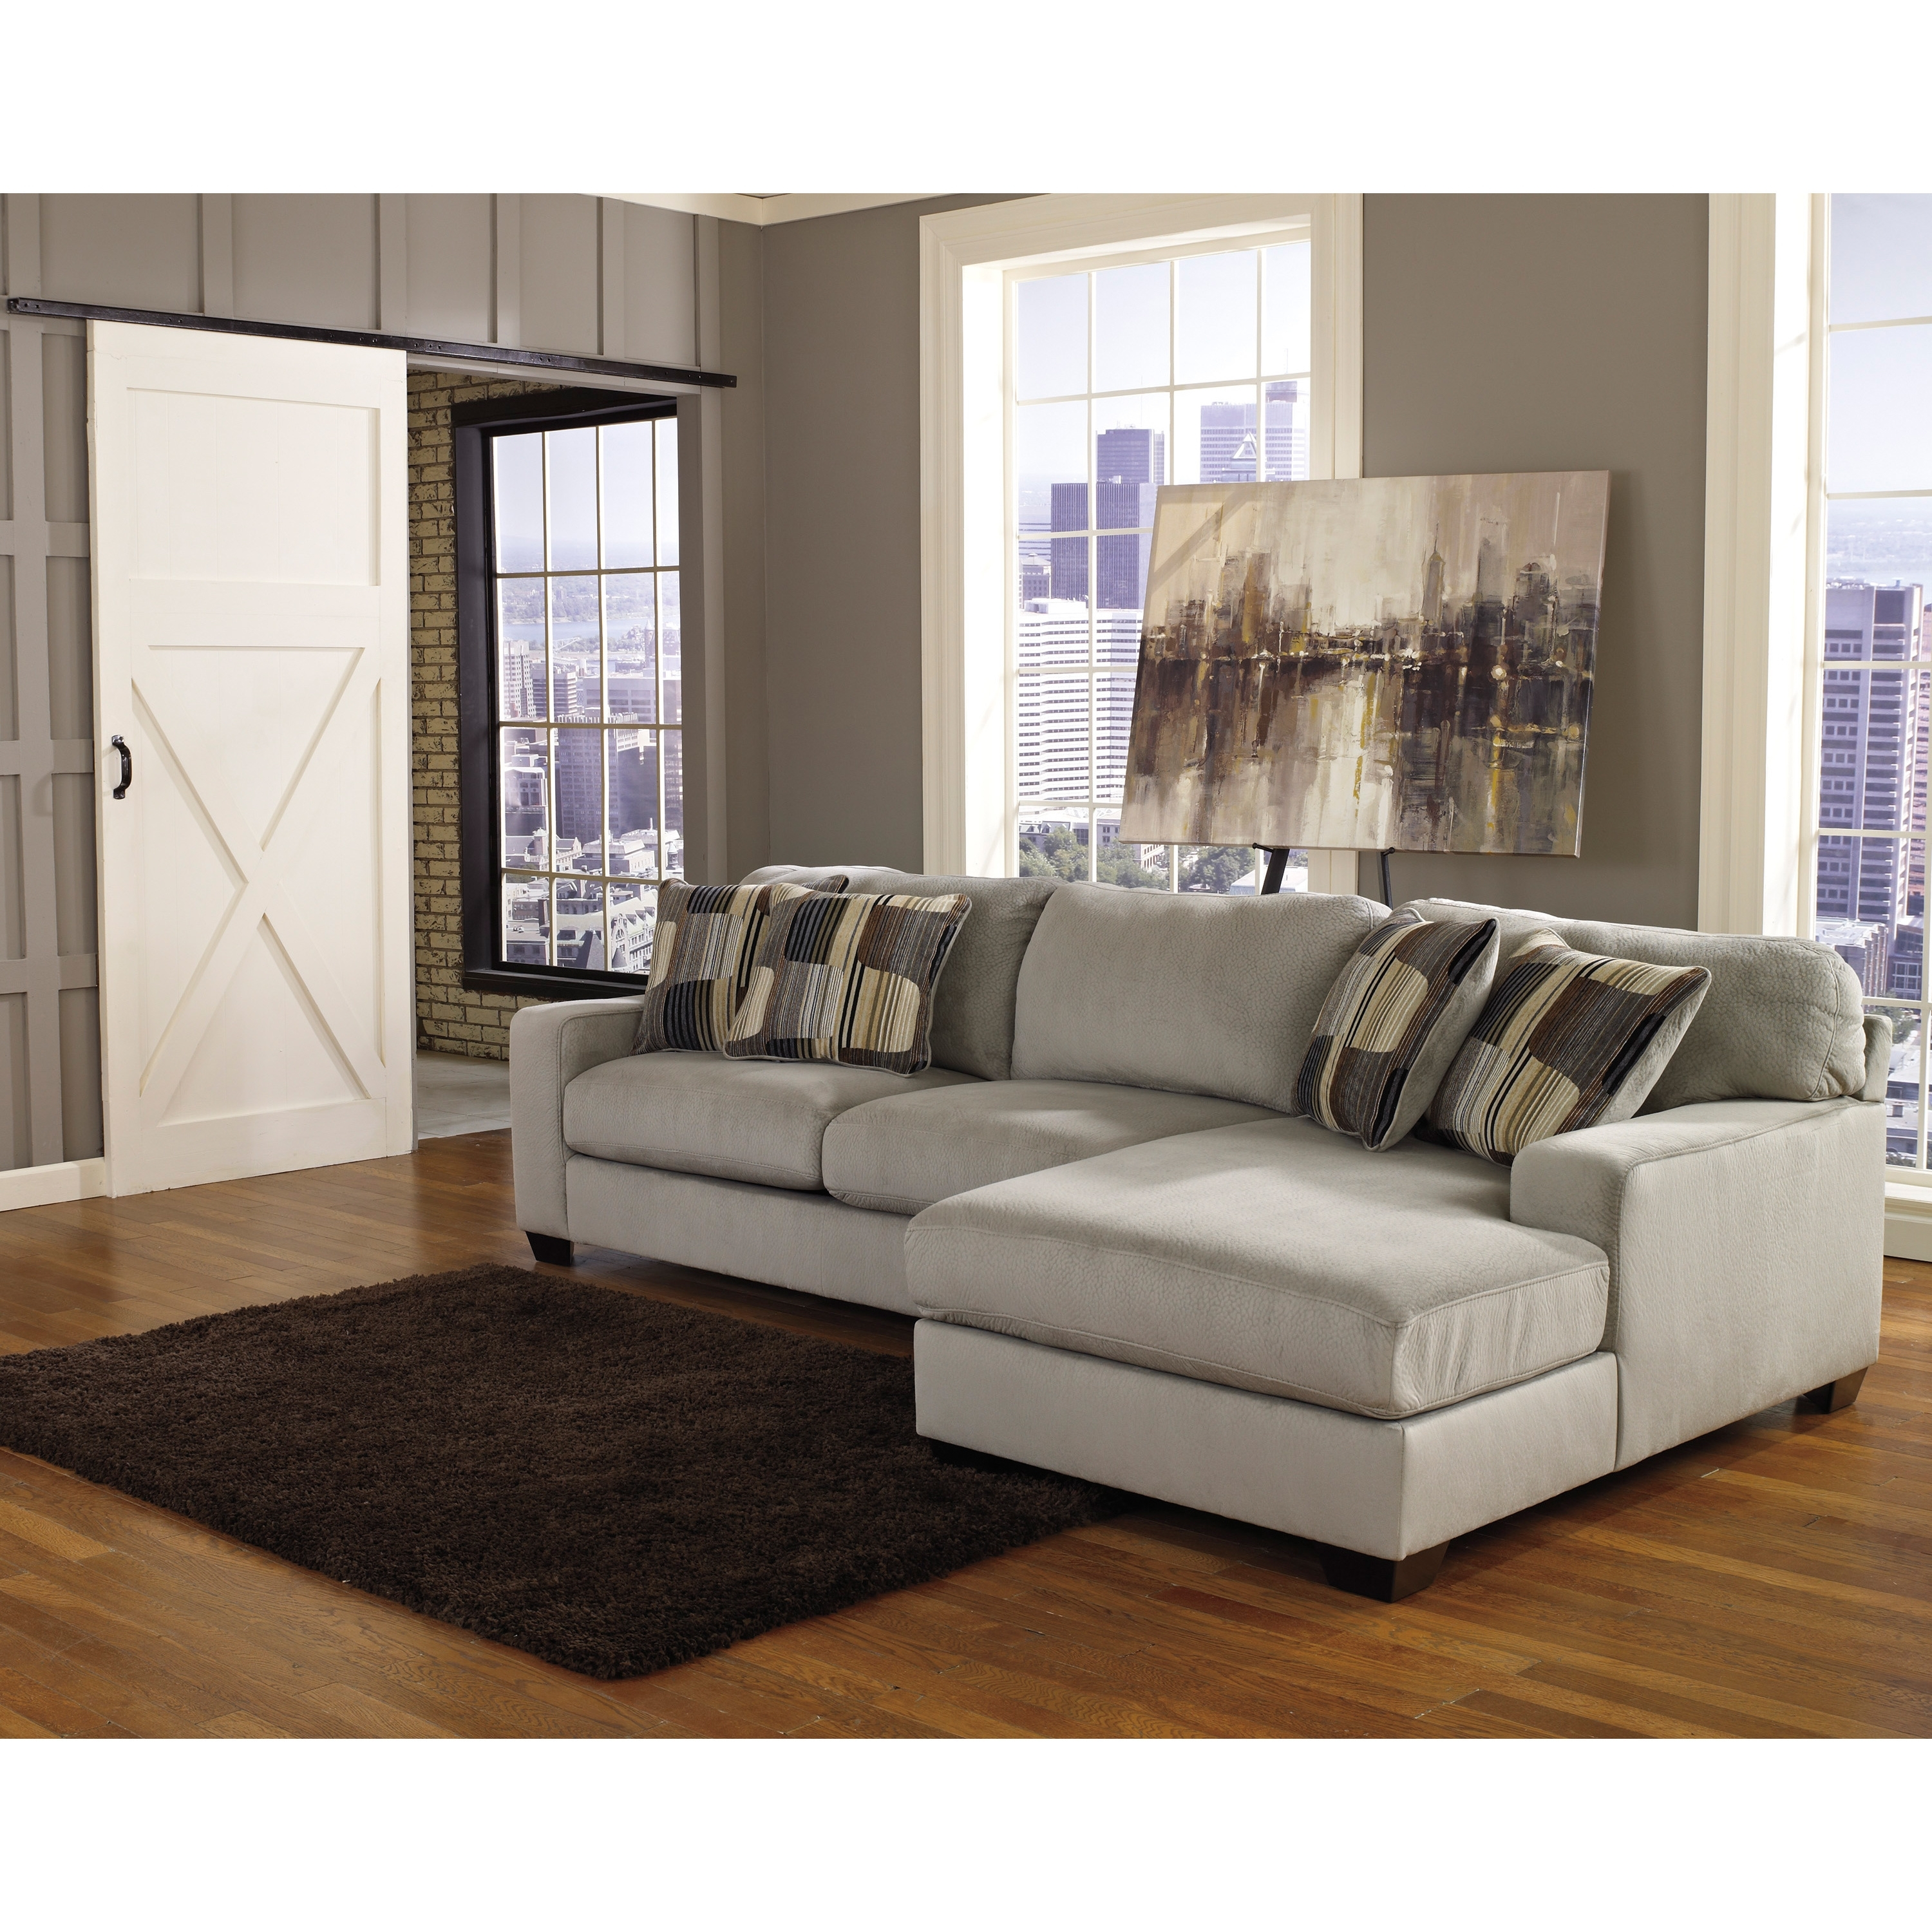 Western Style Sectional Sofas – Fjellkjeden For Most Recently Released Western Style Sectional Sofas (View 14 of 20)